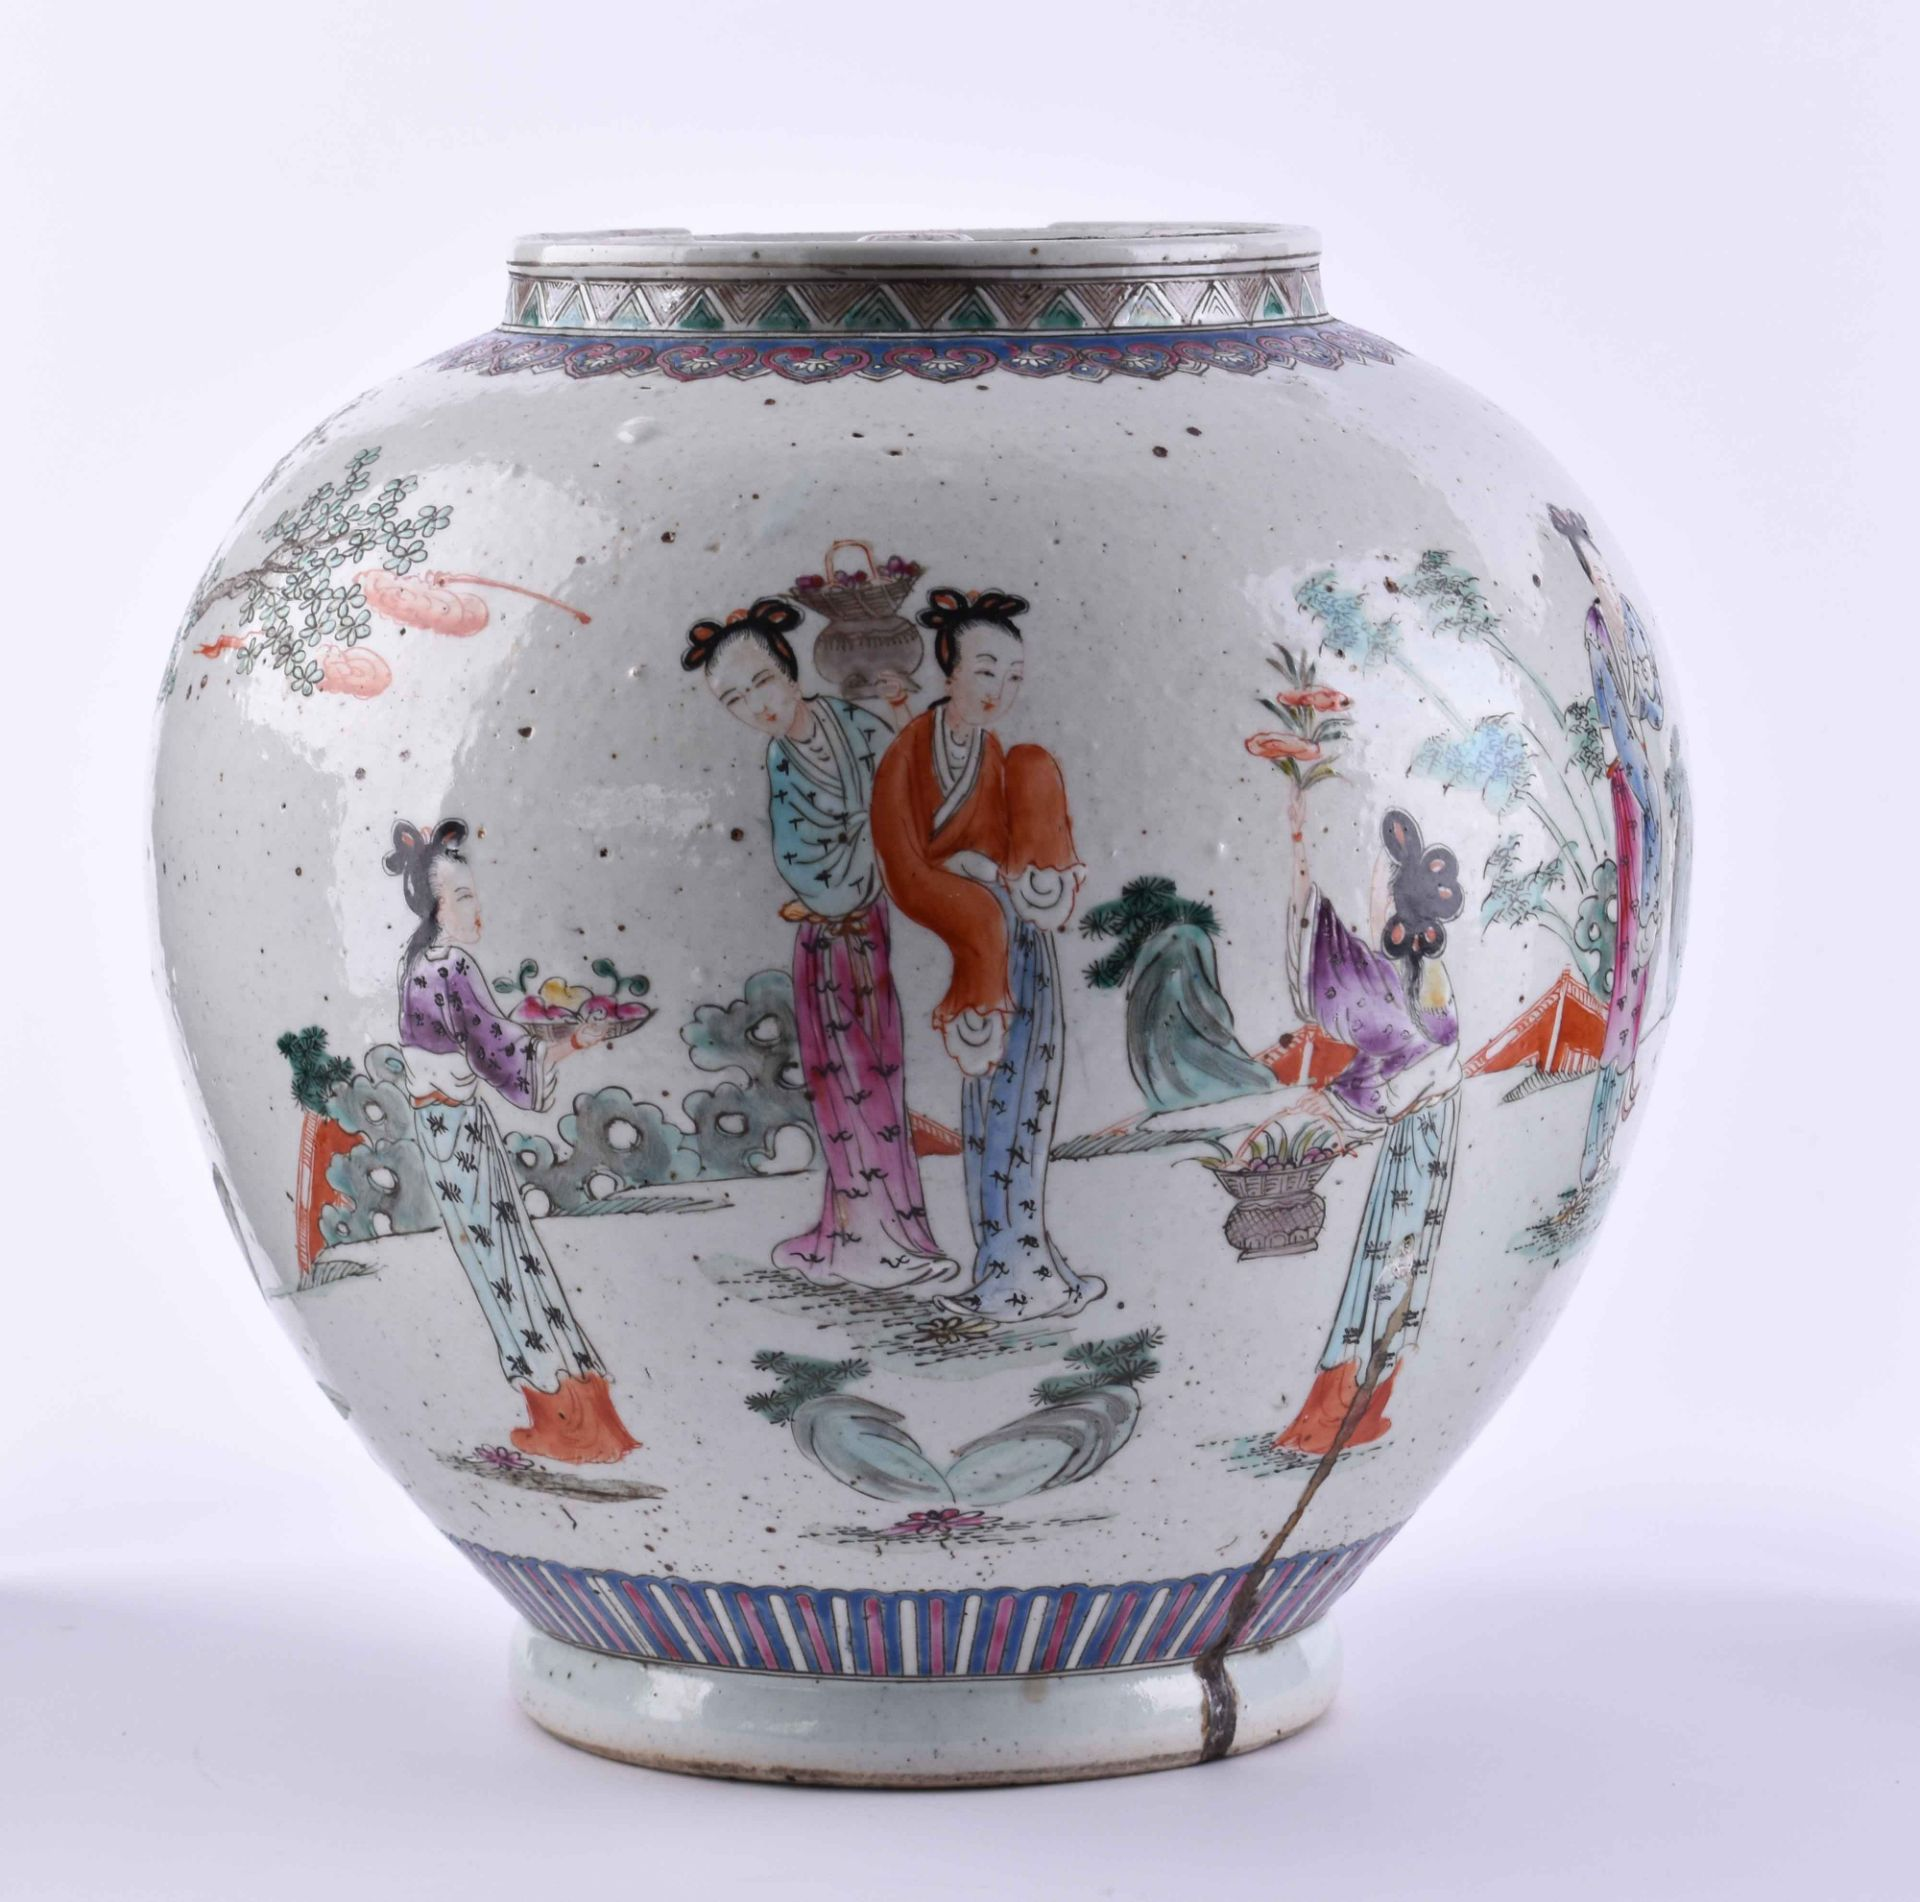 Ginger pot China late Qing period - Image 2 of 7